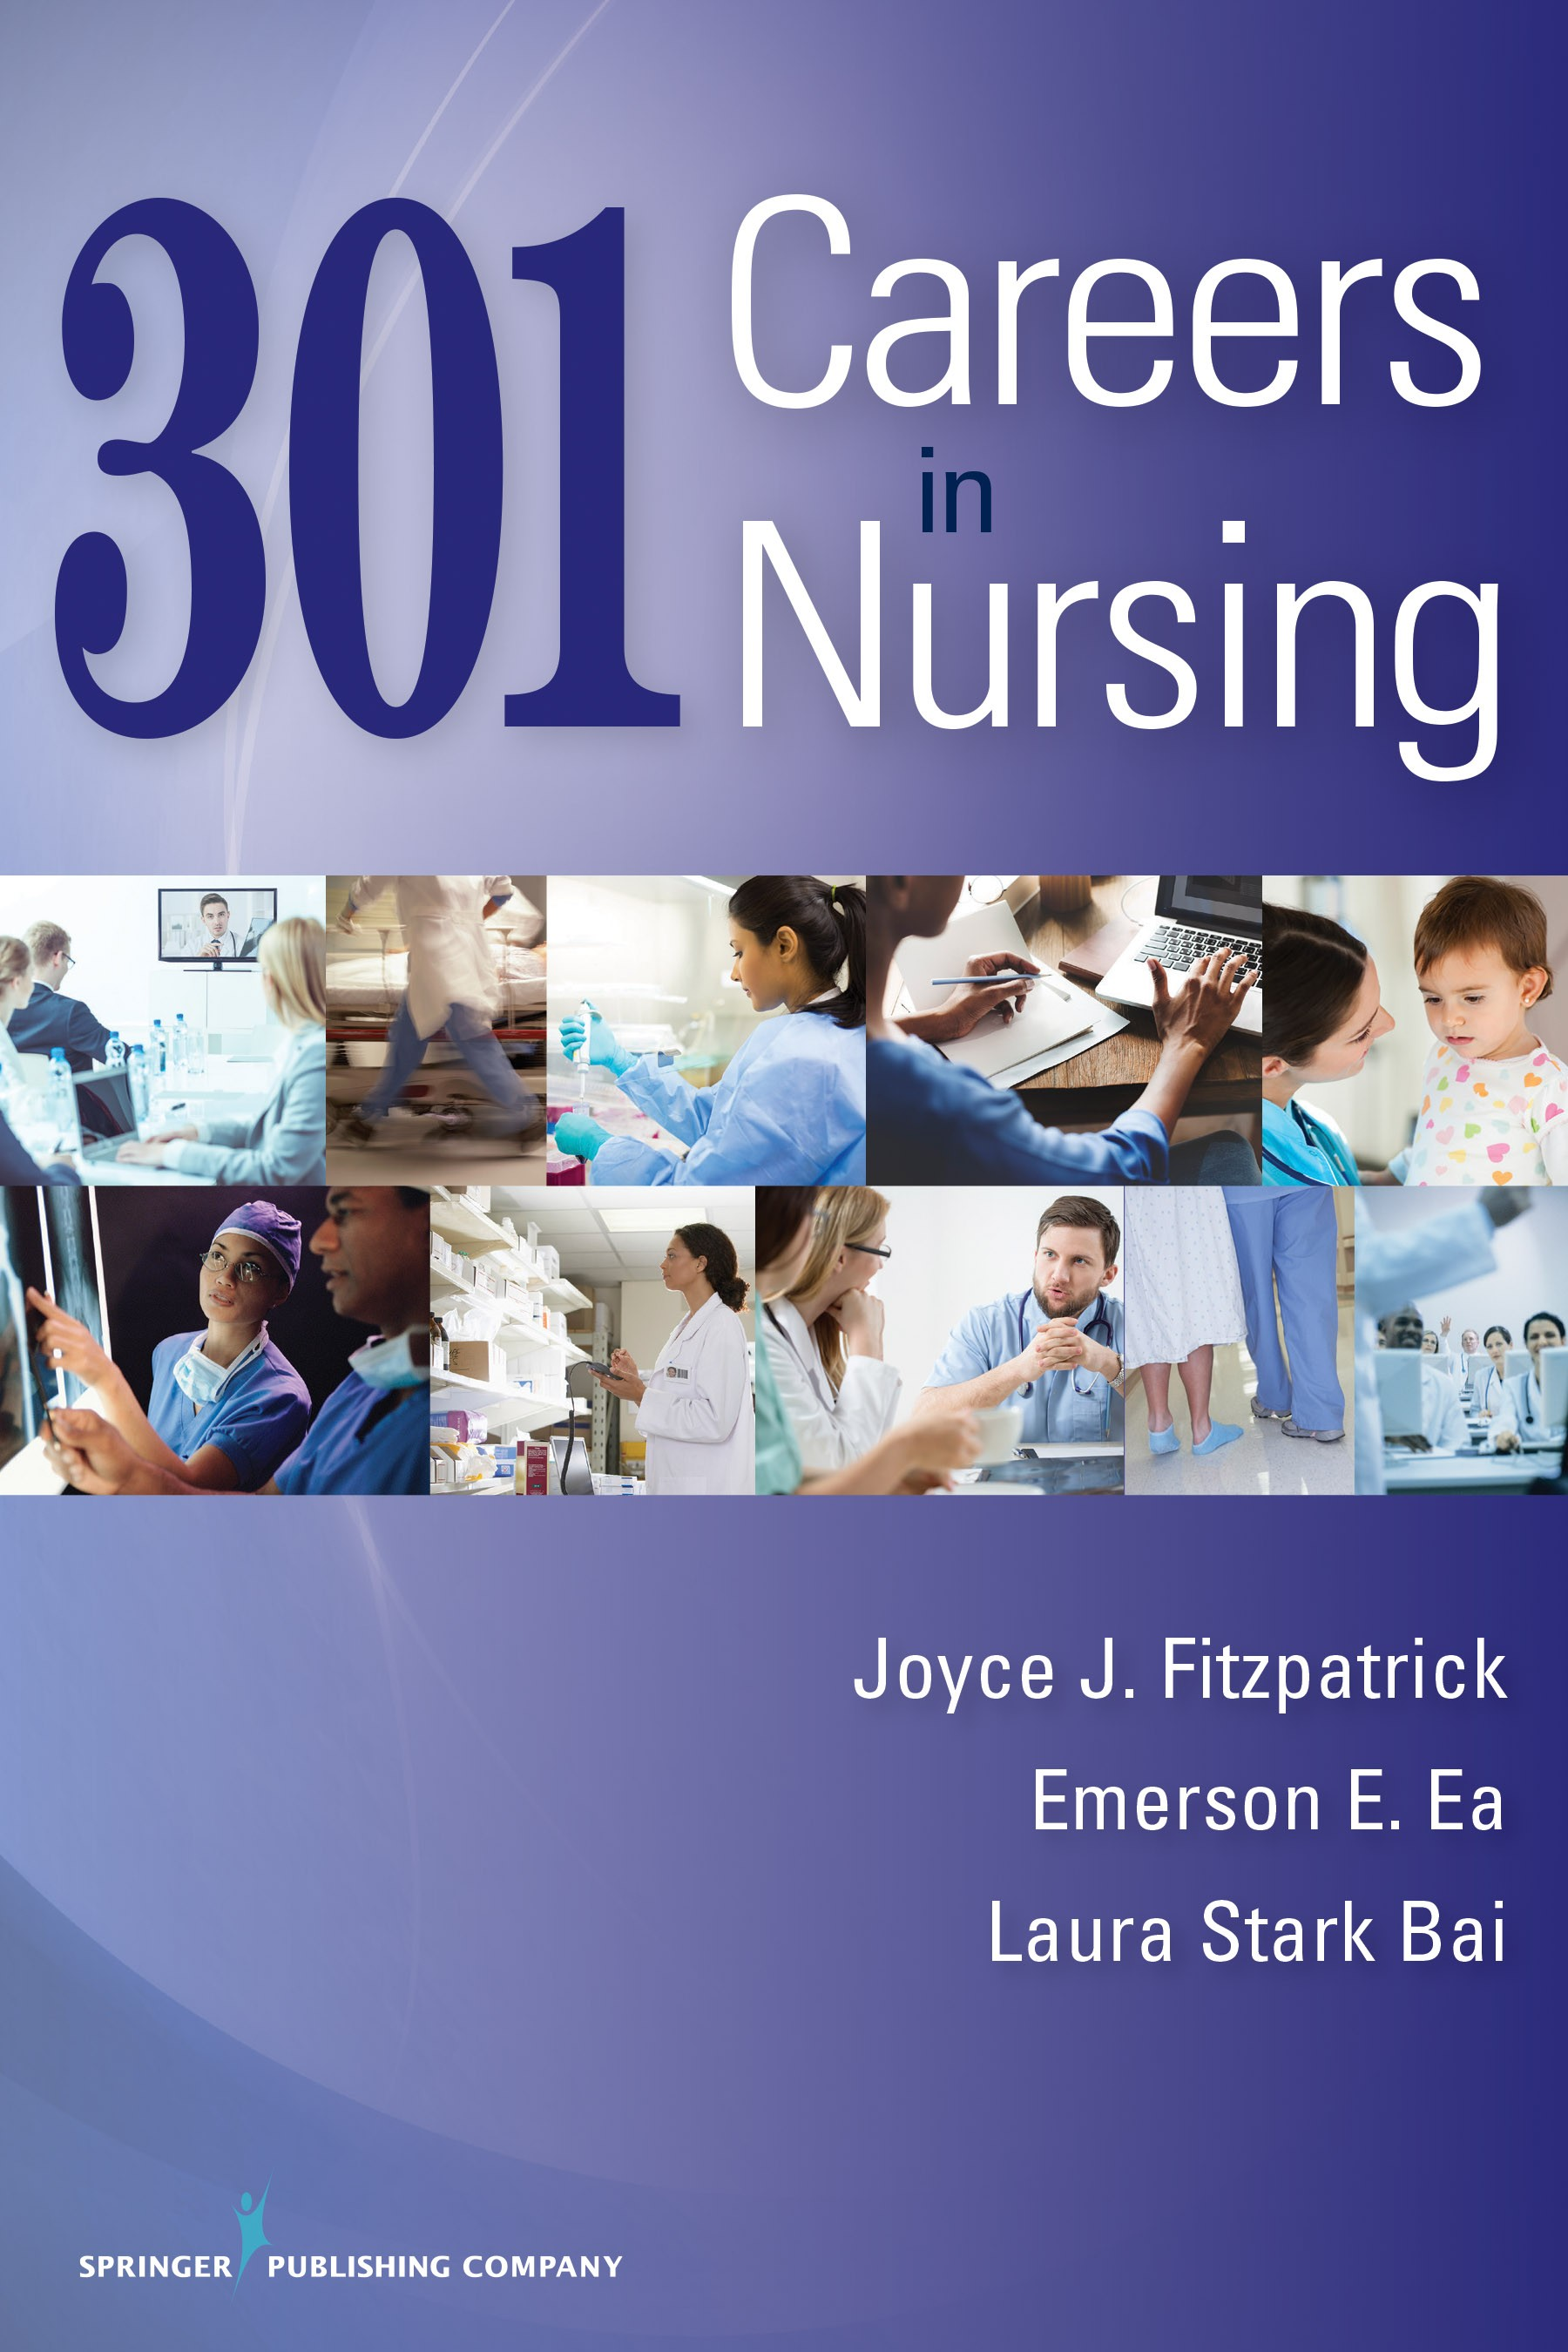 301 Careers in Nursing